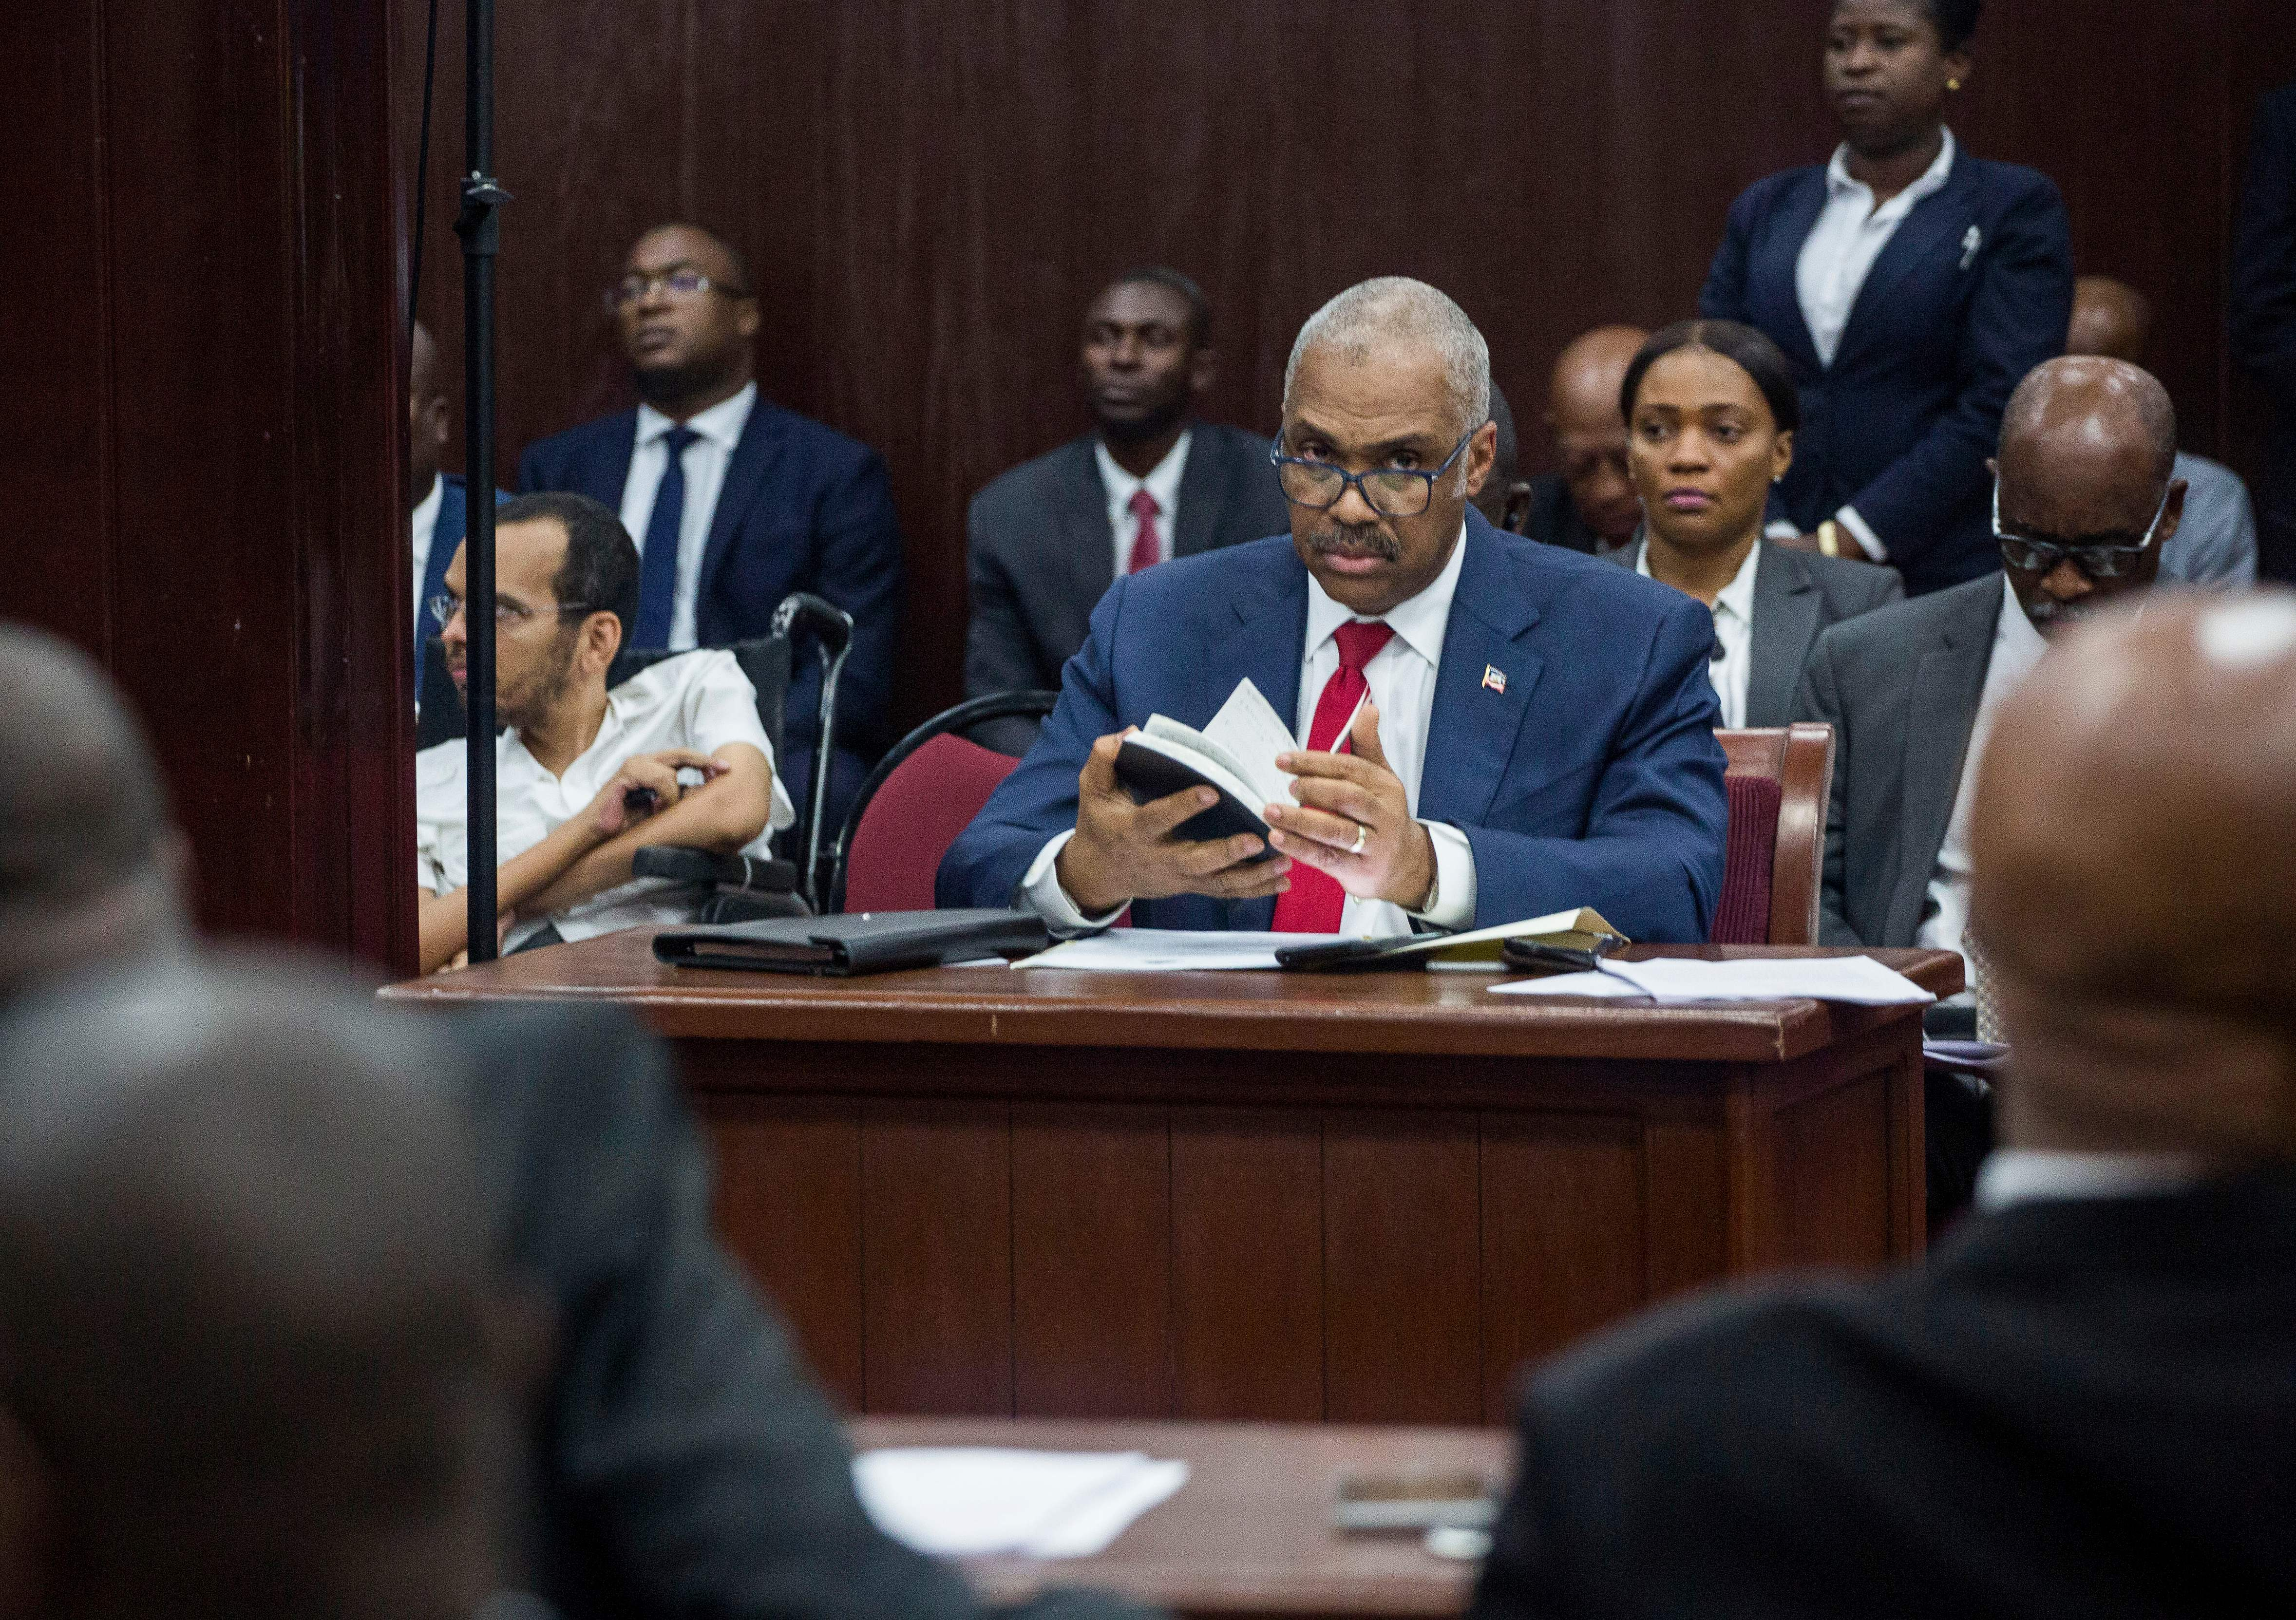 Prime Minister Jack Guy Lafontant in his place in Parliament for the interpellation session at the Chamber of Deputies in Port-au-Prince, Haiti, on July 14, 2018.